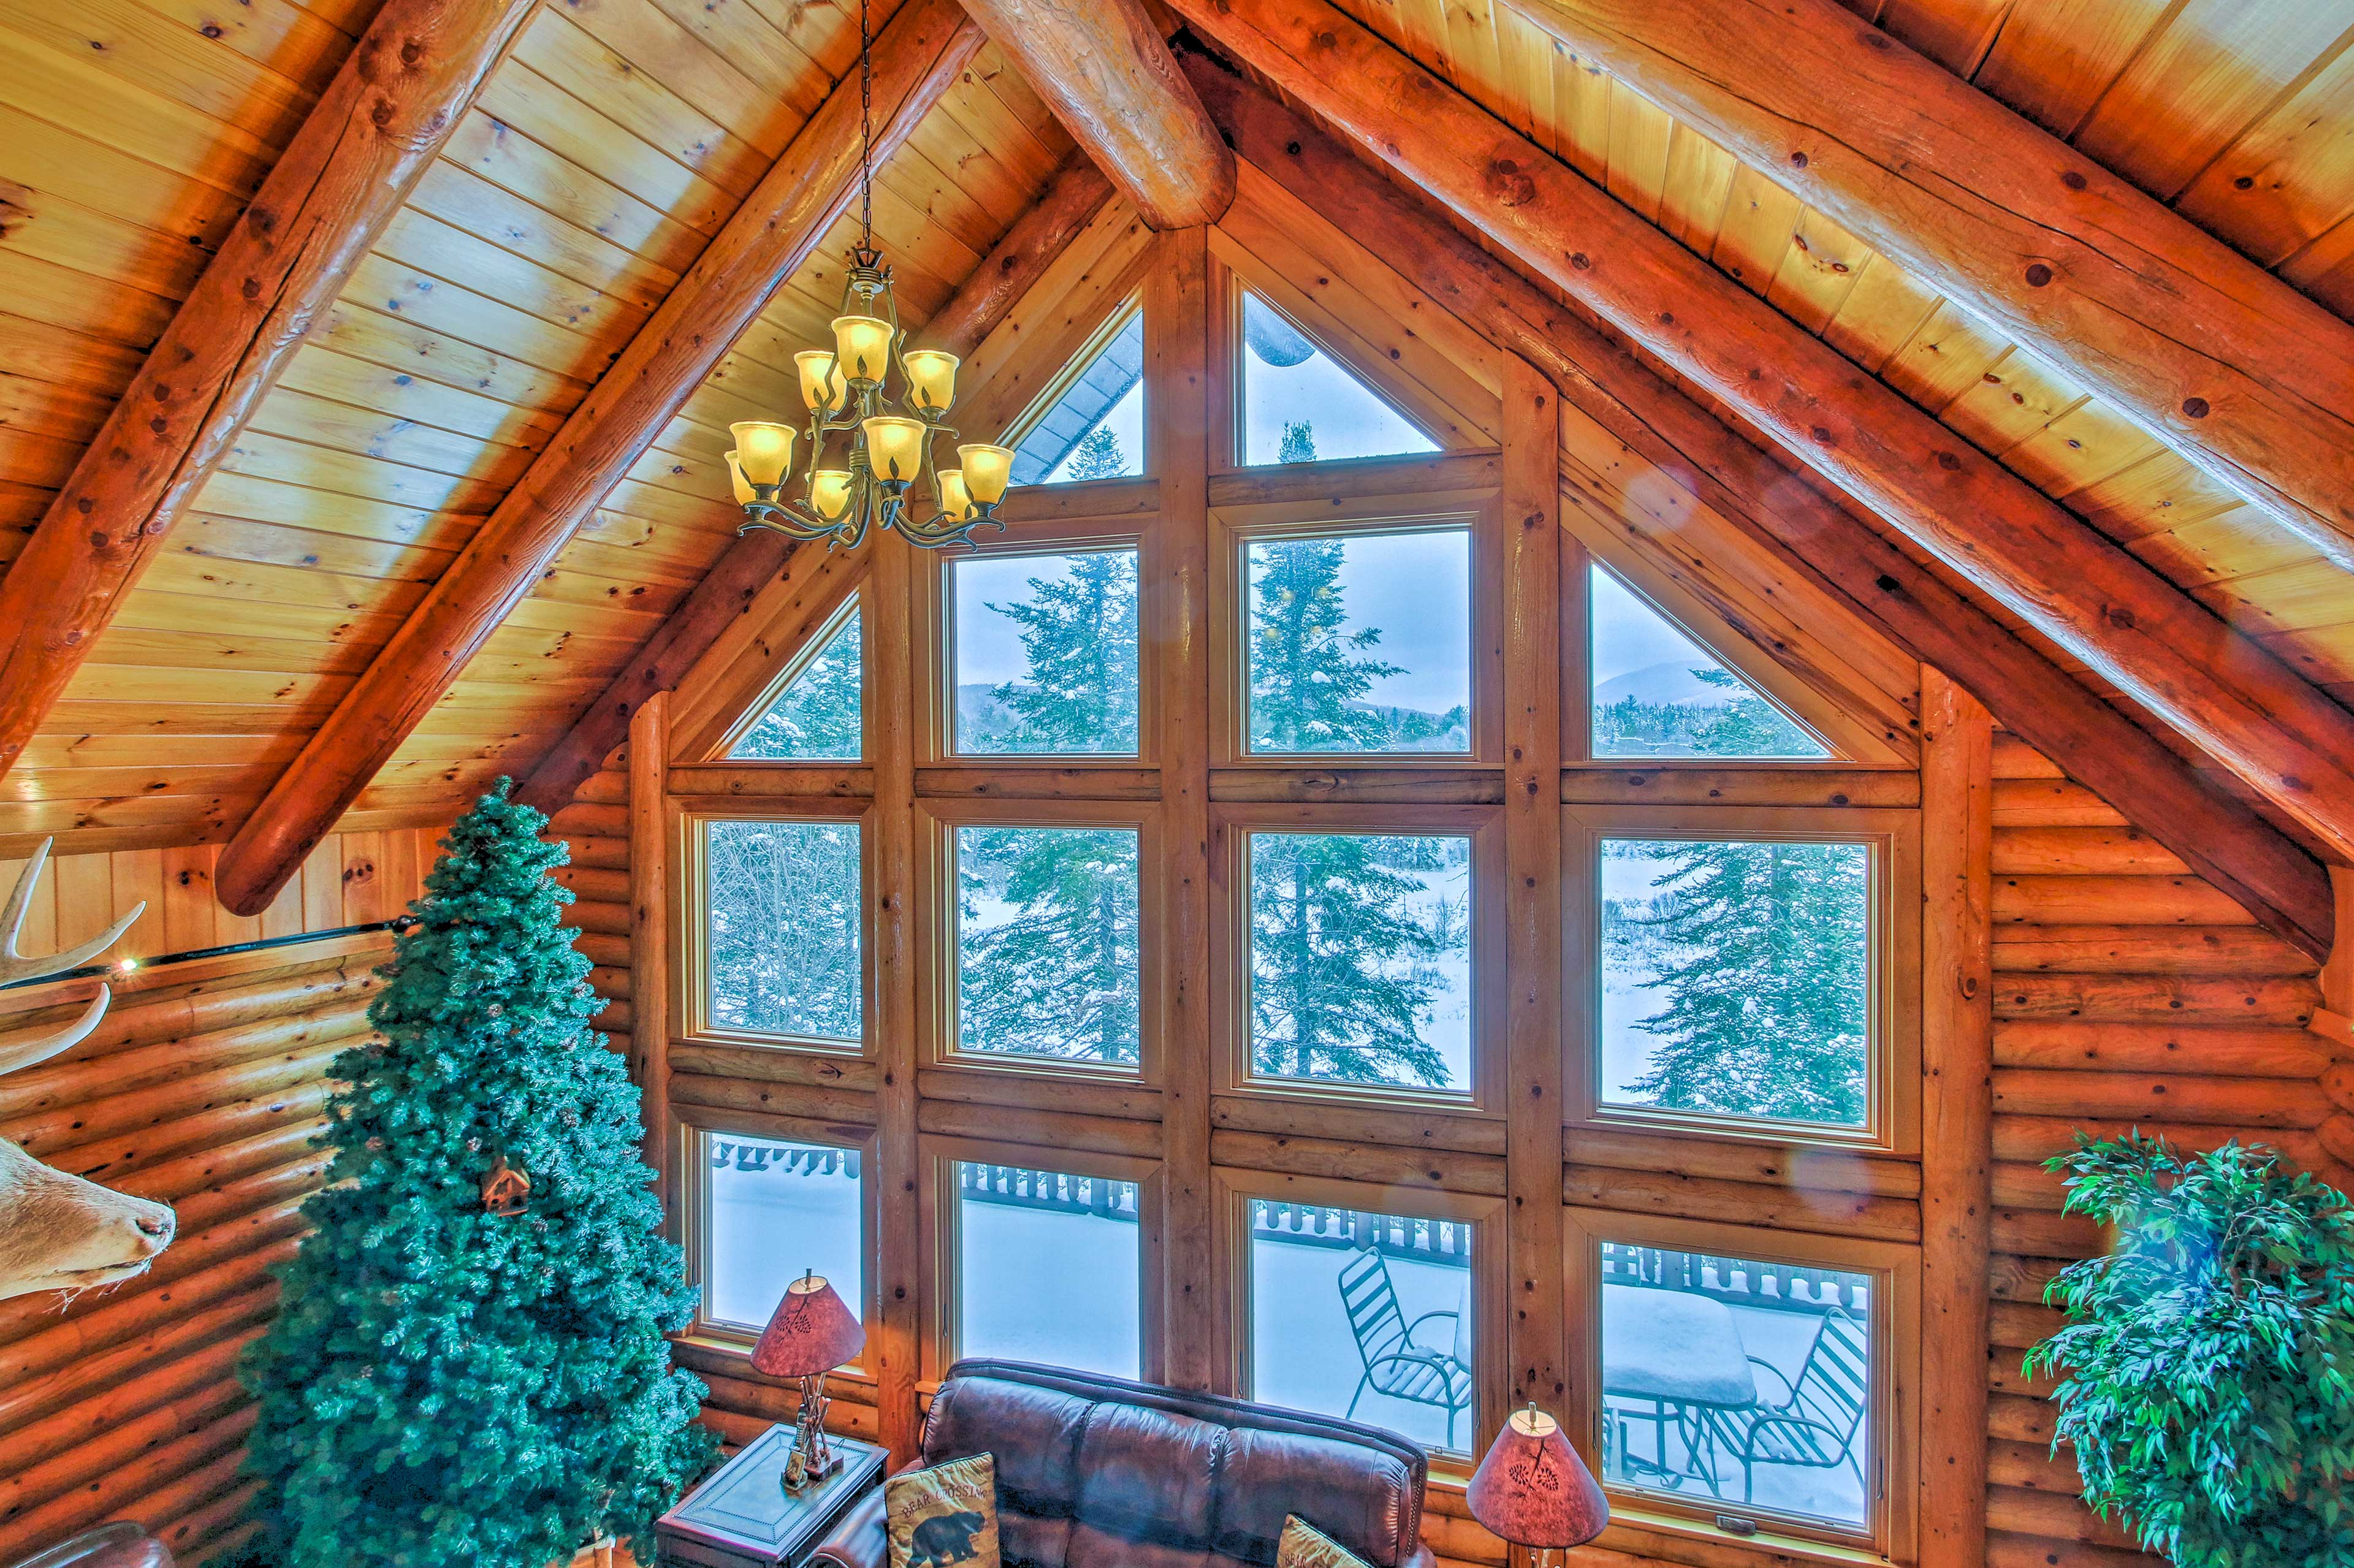 The vaulted wood-beam ceiling adds to the character of the cabin.